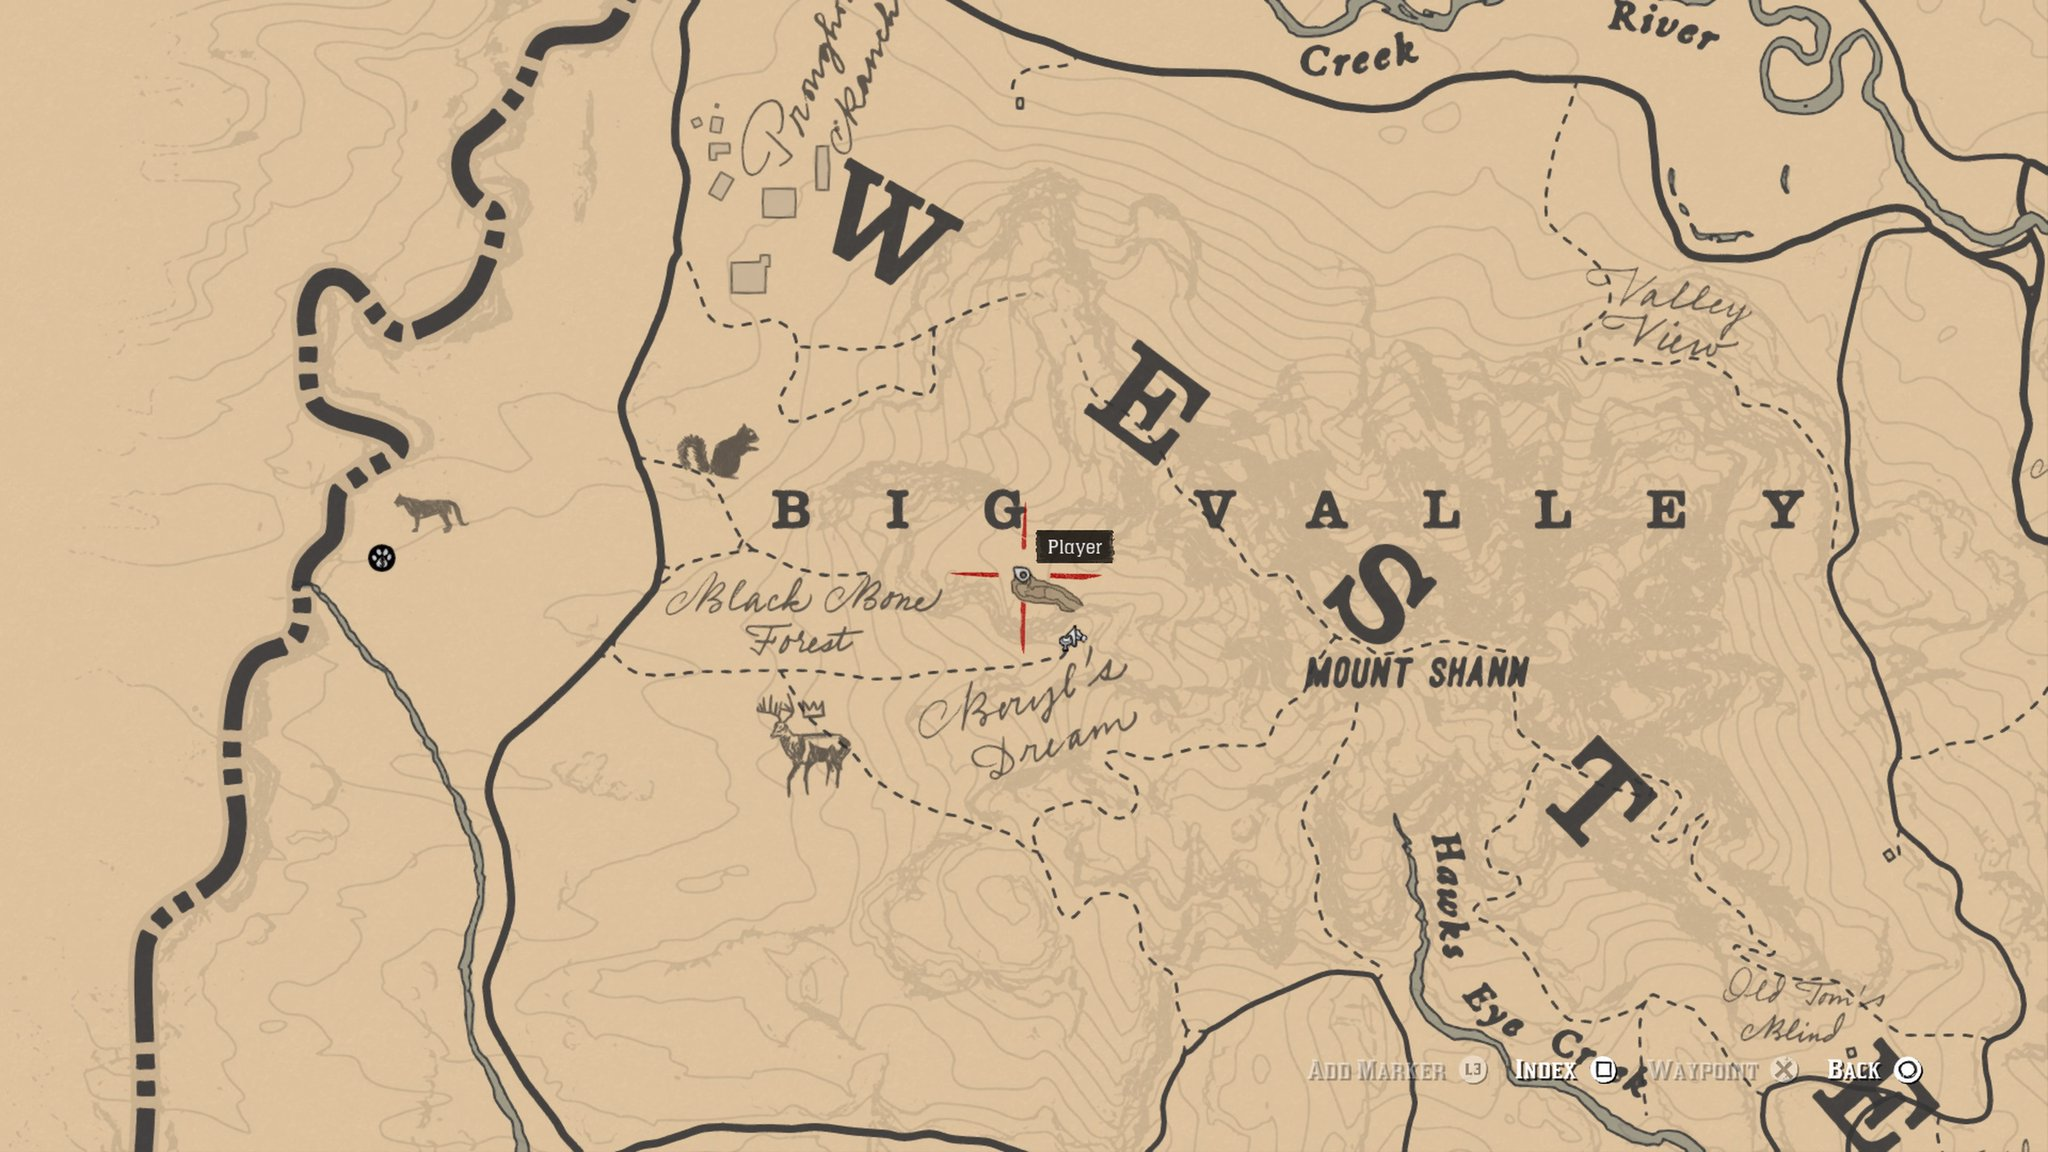 Red Dead Redemption 2 Hats - Where to Find the Viking, Civil War